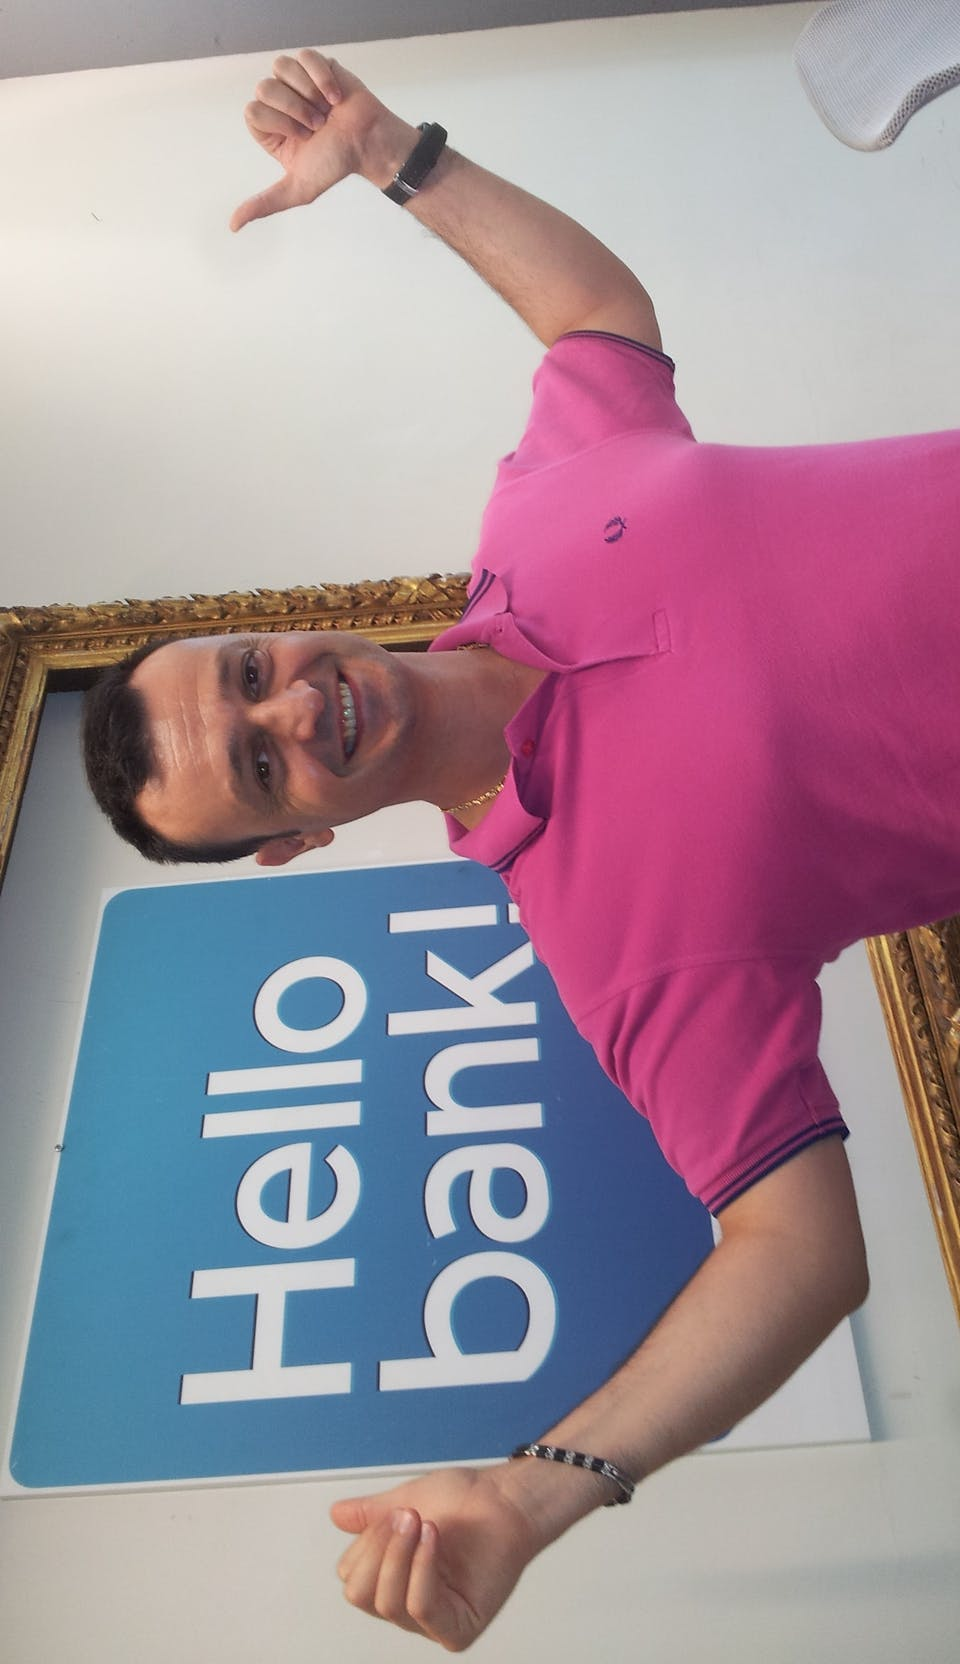 Intervista a Davide, gestore di Hello bank!